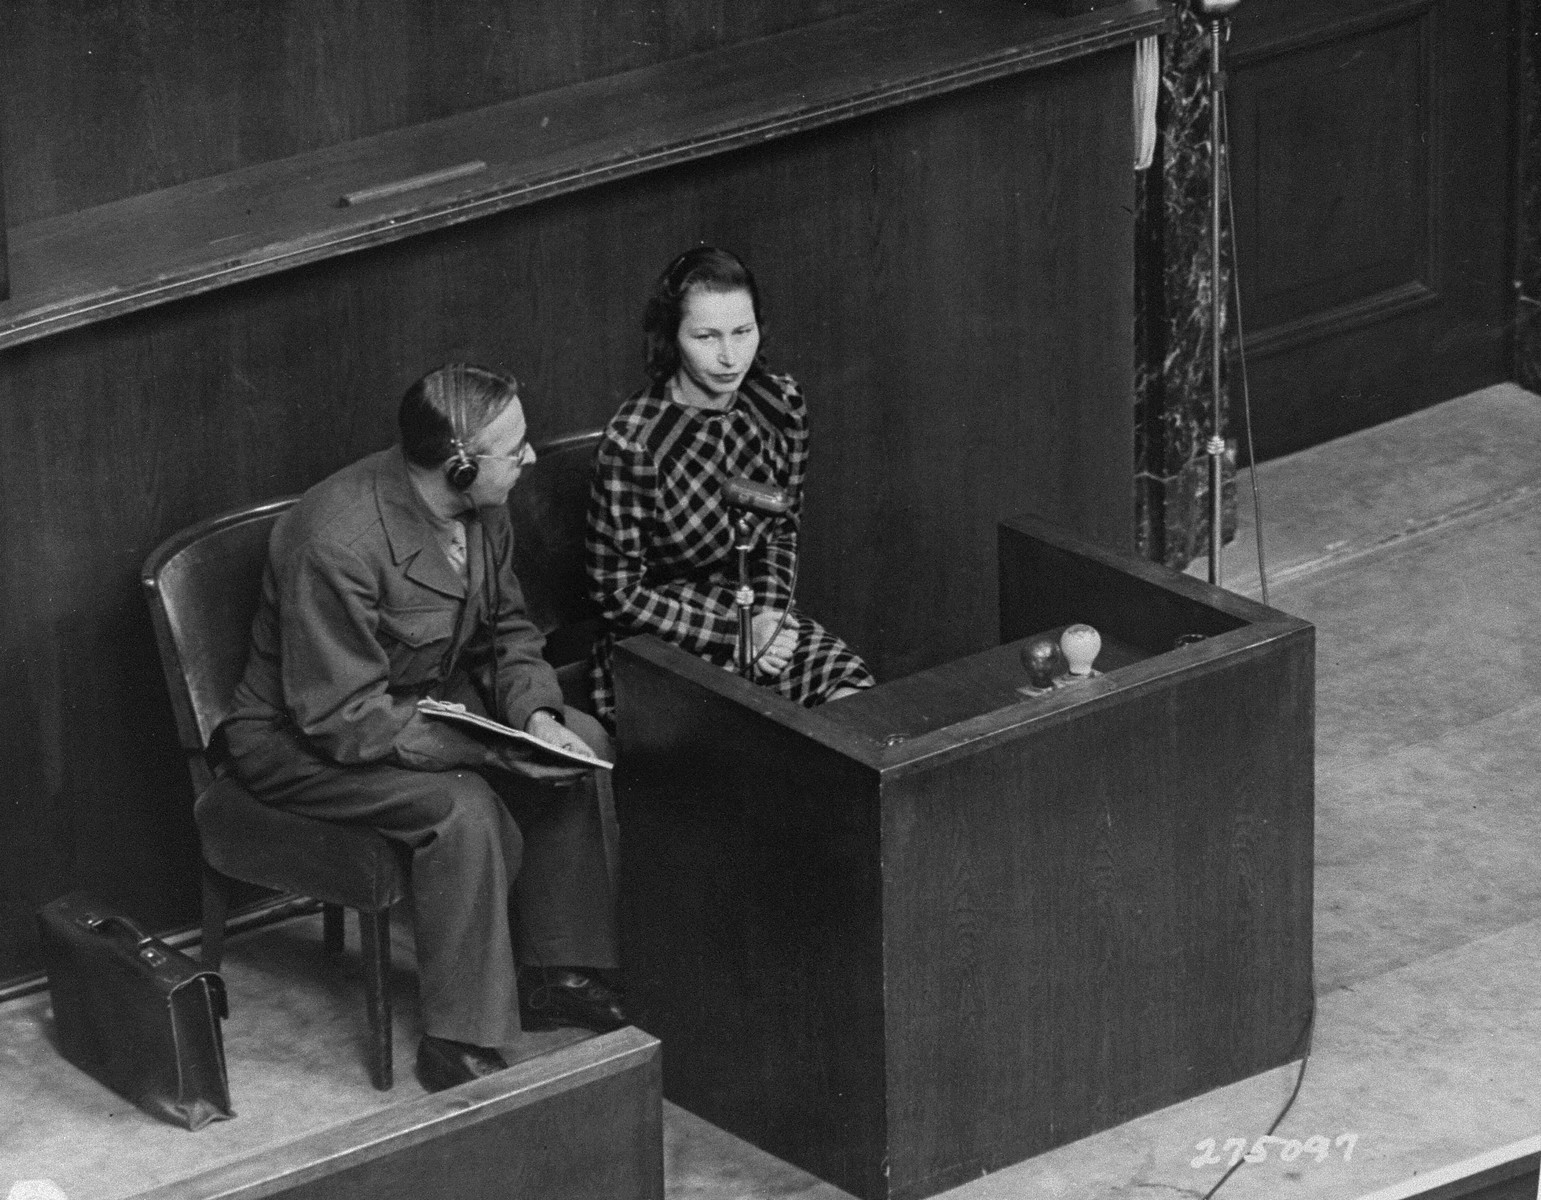 Wladislava Karolewska, one of four Polish women to appear as prosecution witnesses, on the stand at the Doctors Trial.